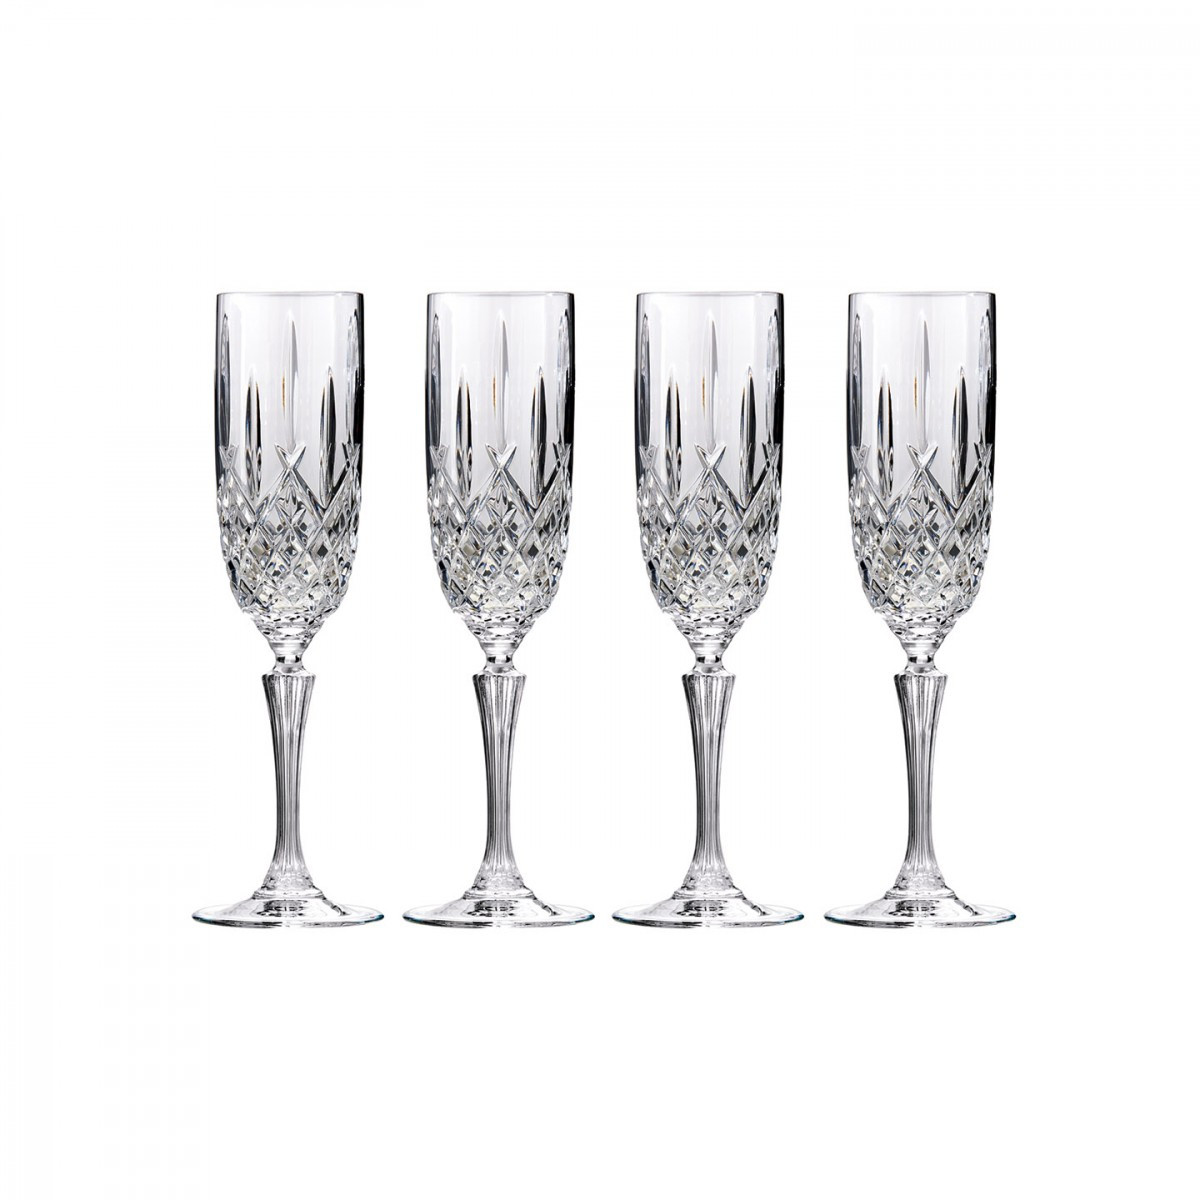 marquis by waterford markham vase of markham flute set of 4 marquis by waterford us intended for markham flute set of 4